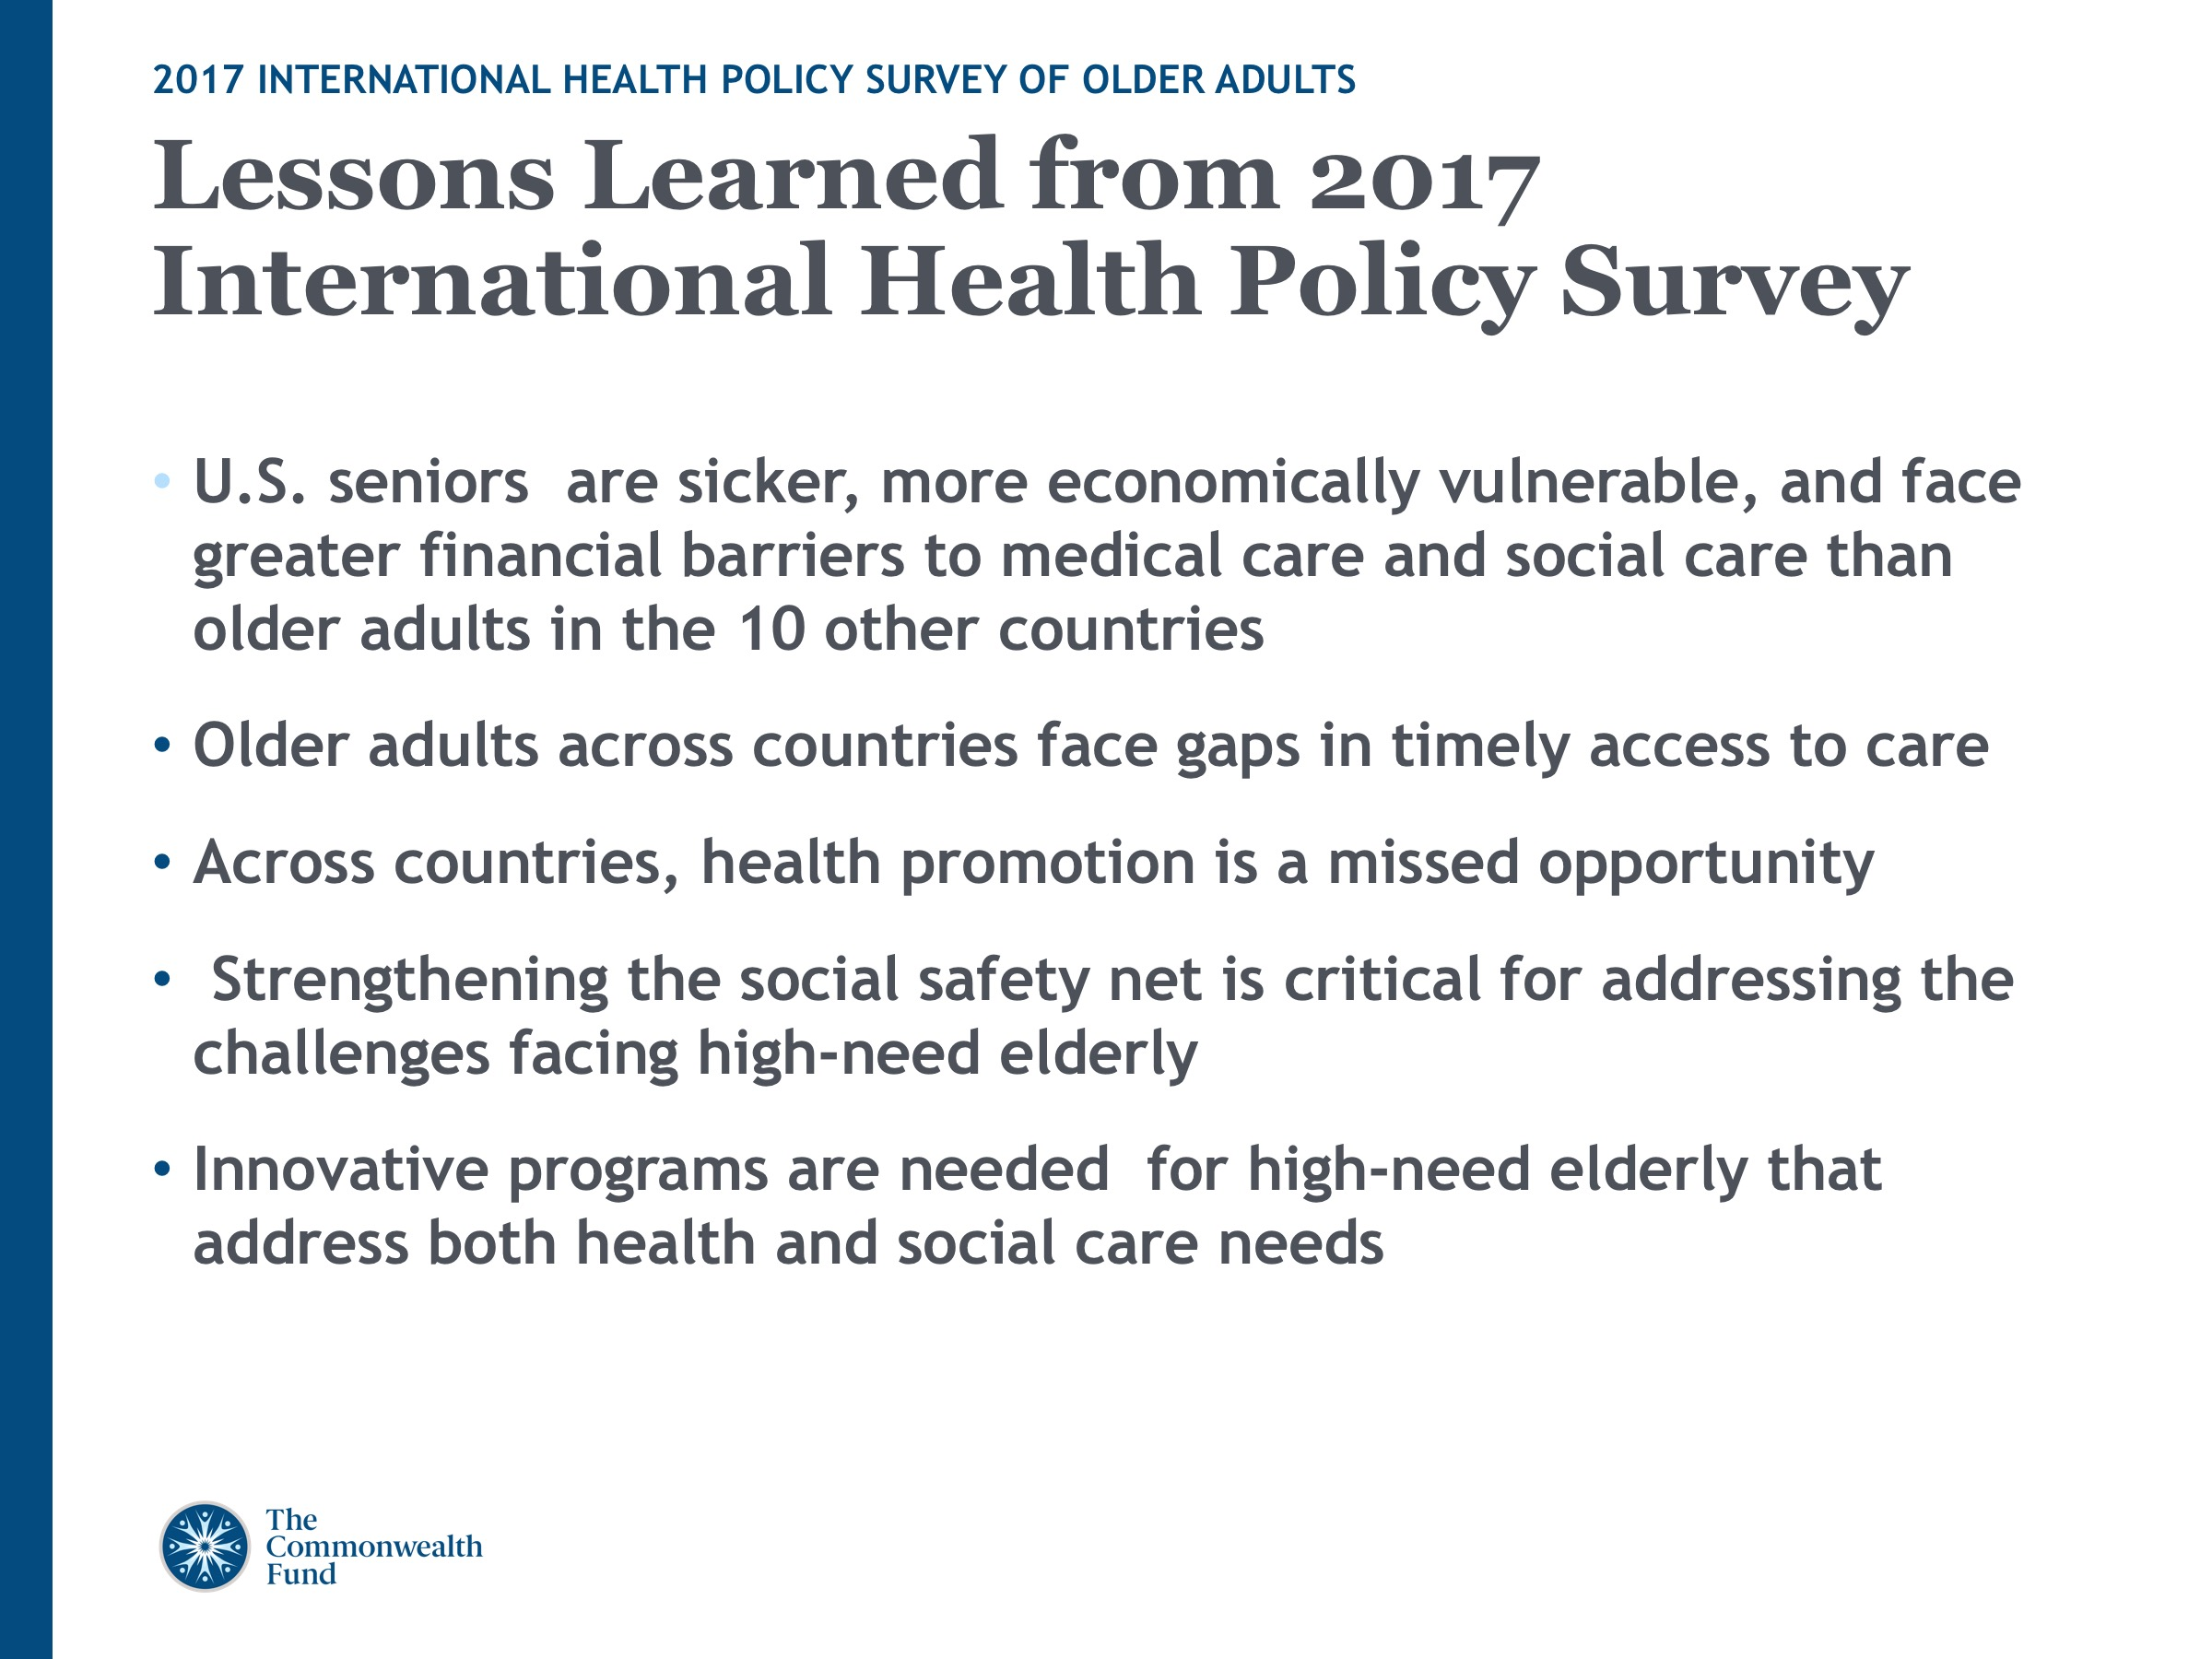 2017 International Health Policy Survey Slideshow Slide 9